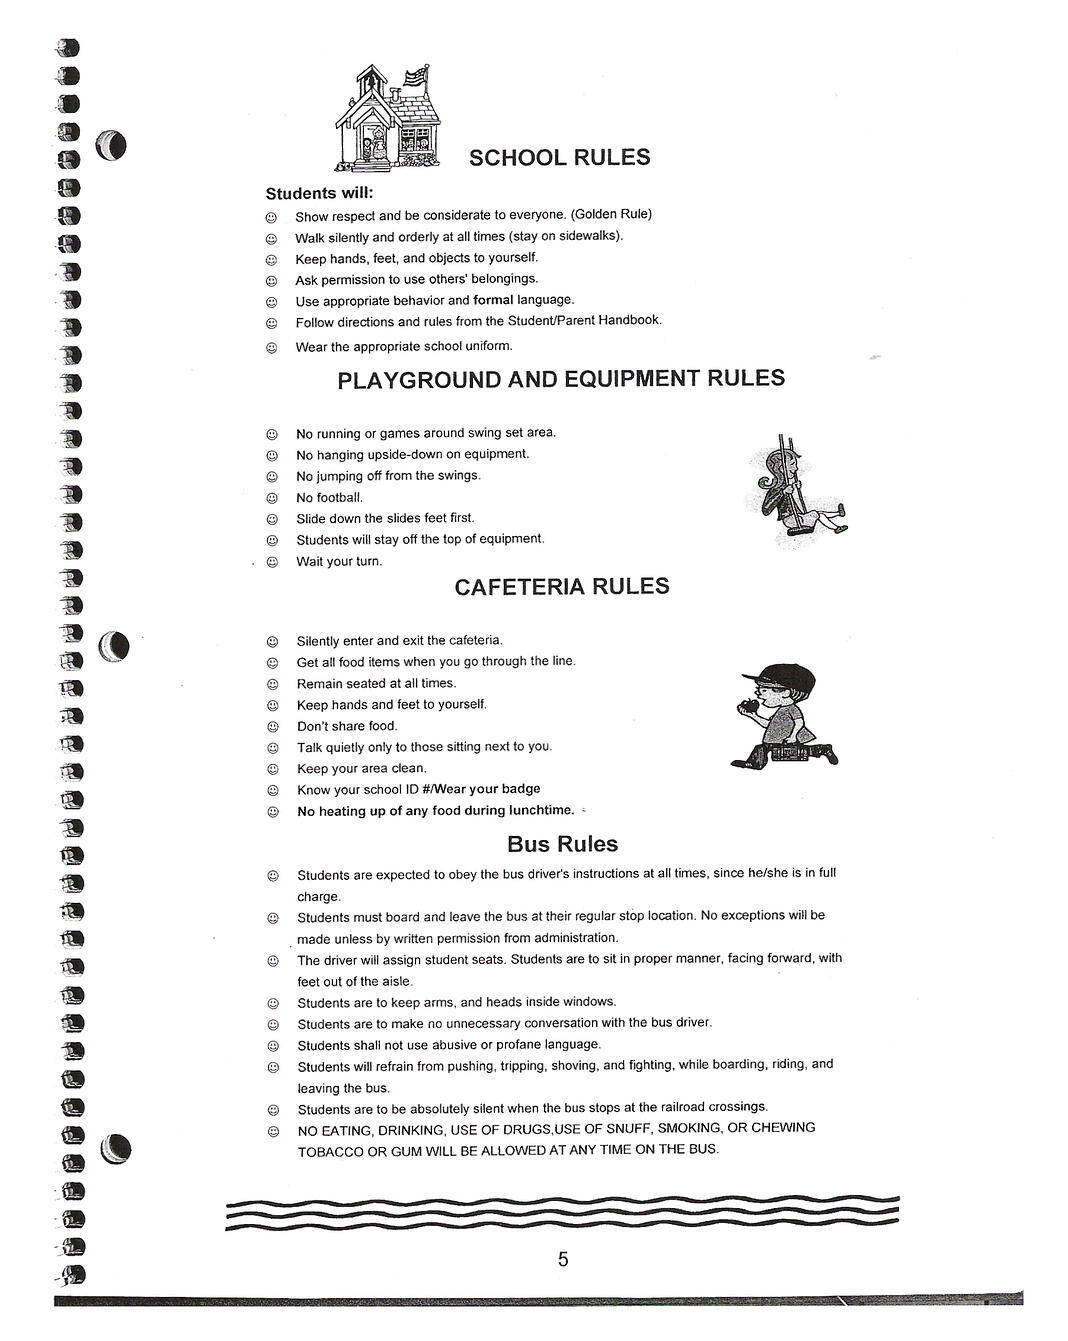 persuasive essay on school rules As with all essay writing, persuasive writing must include an introduction, a body, and a conclusion how you arrange material within these three sections depends on your audience 5.